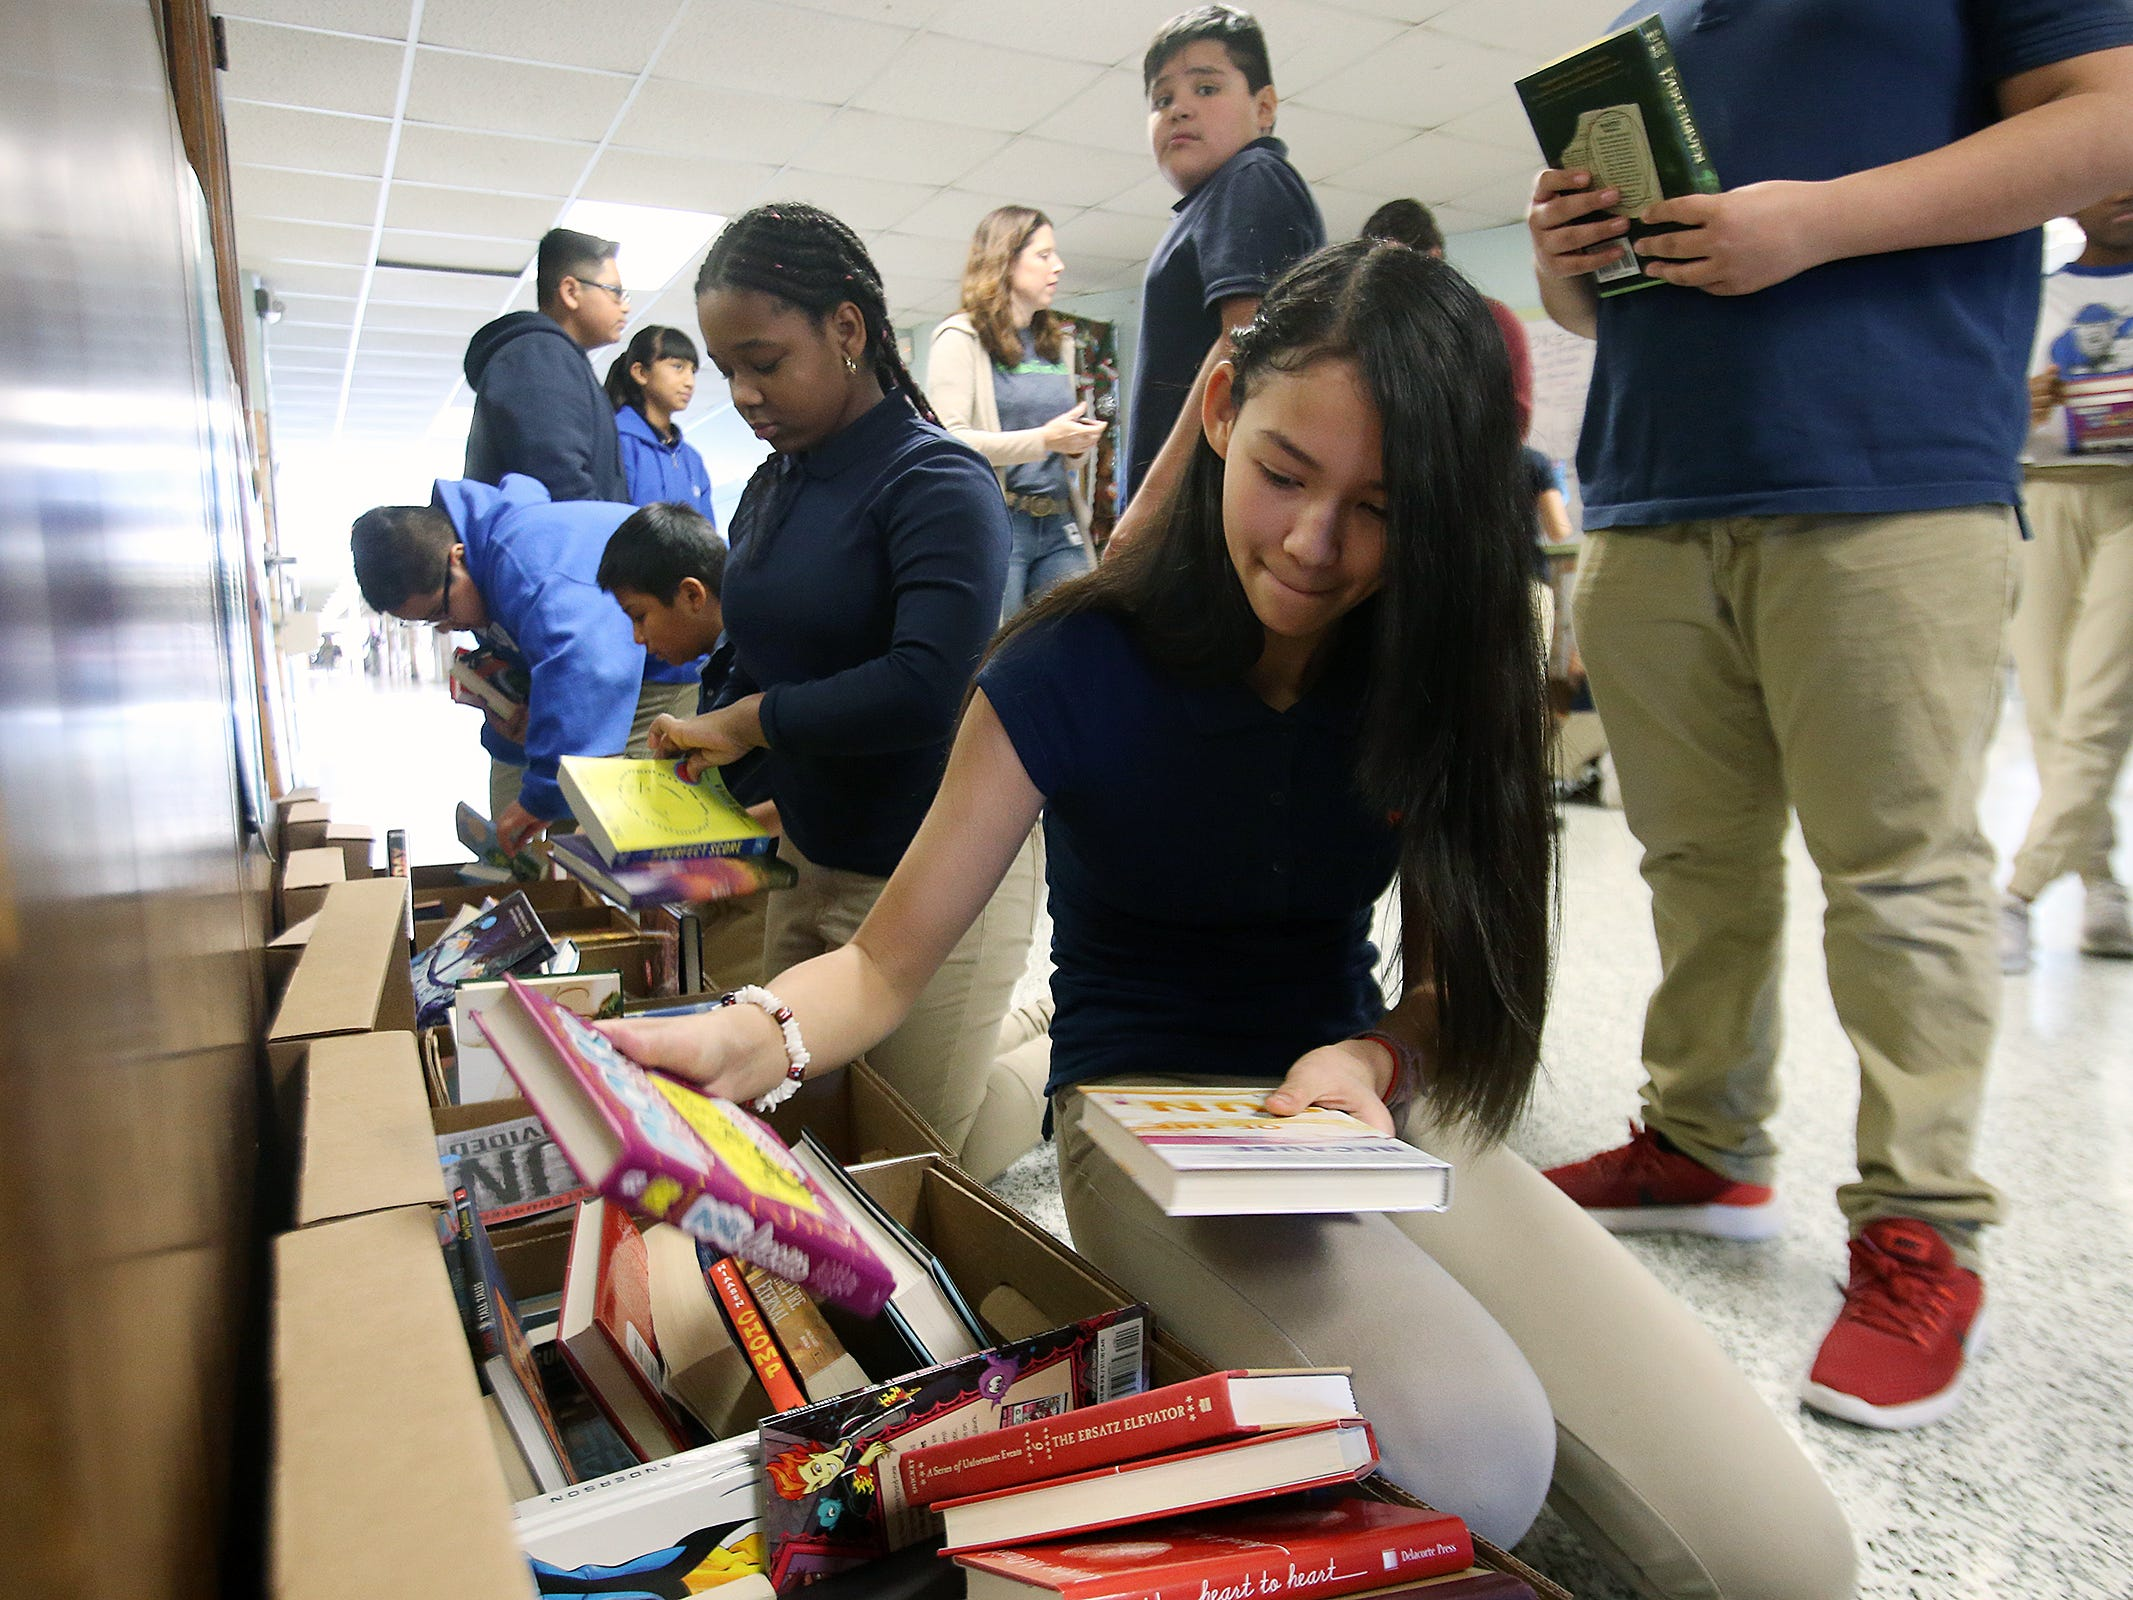 Angela Bui, 12, of Lakewood chooses a book during a Bridge of Books Foundation event for sixth graders at Lakewood Middle School in Lakewood, NJ Tuesday, December 18, 2018. The Bridge of Books Foundation, which donates recreational reading books to underprivileged kids across the state, donated its one millionth book during this event.